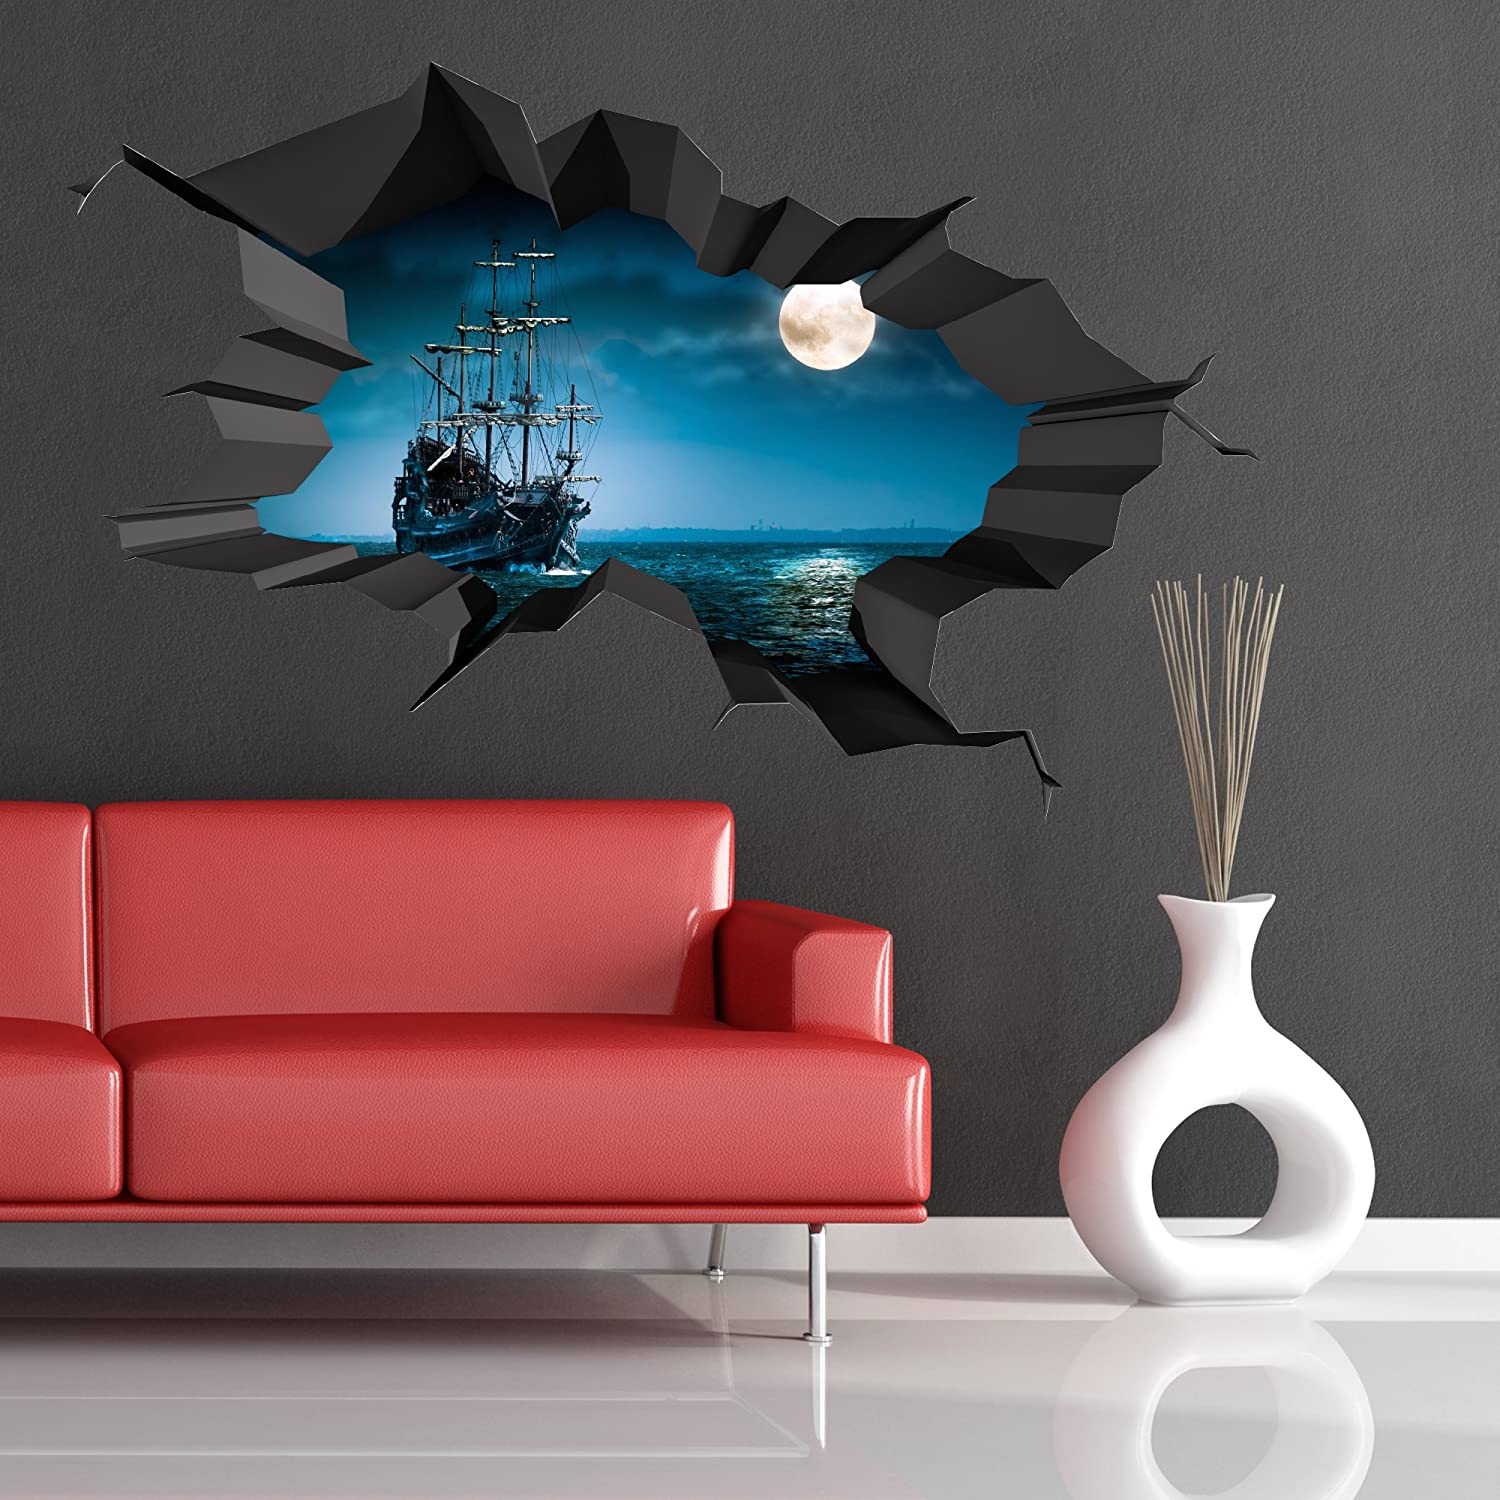 Pirate ship sea cave porthole moon cracked 3d wall art sticker pirate ship sea cave porthole moon cracked 3d wall art sticker boys childs decal mural new 1 amazon diy tools amipublicfo Images